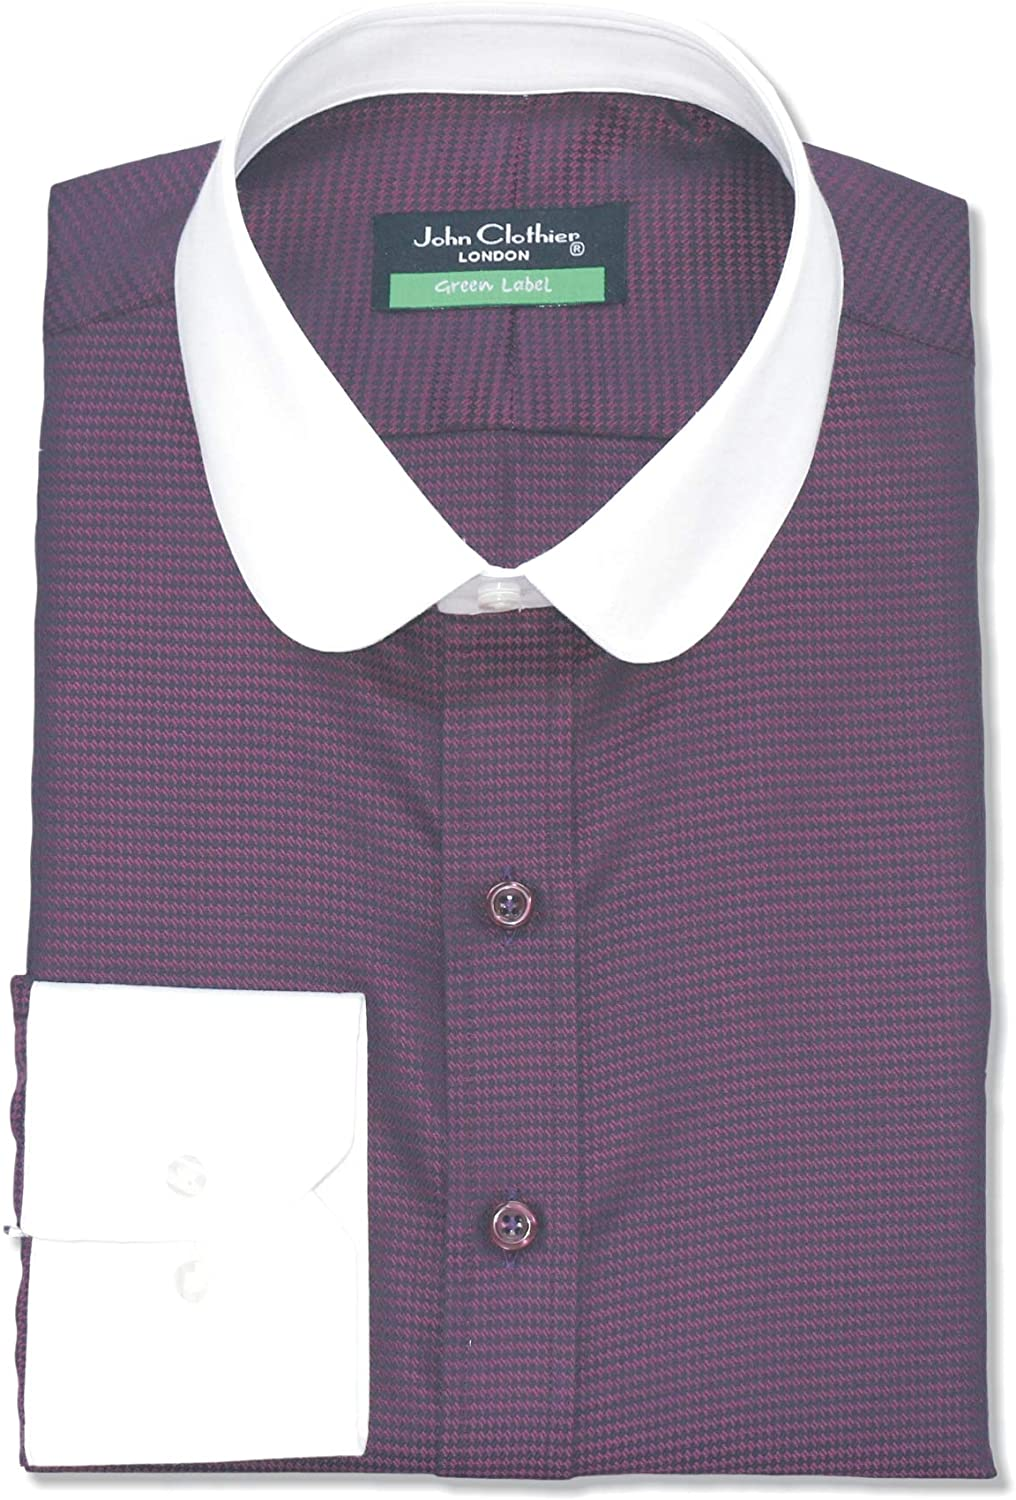 Round Collar Peaky Blinders Mens Bankers Shirt Maroon Oxford 100% Cotton Penny Collar Gents 100-44